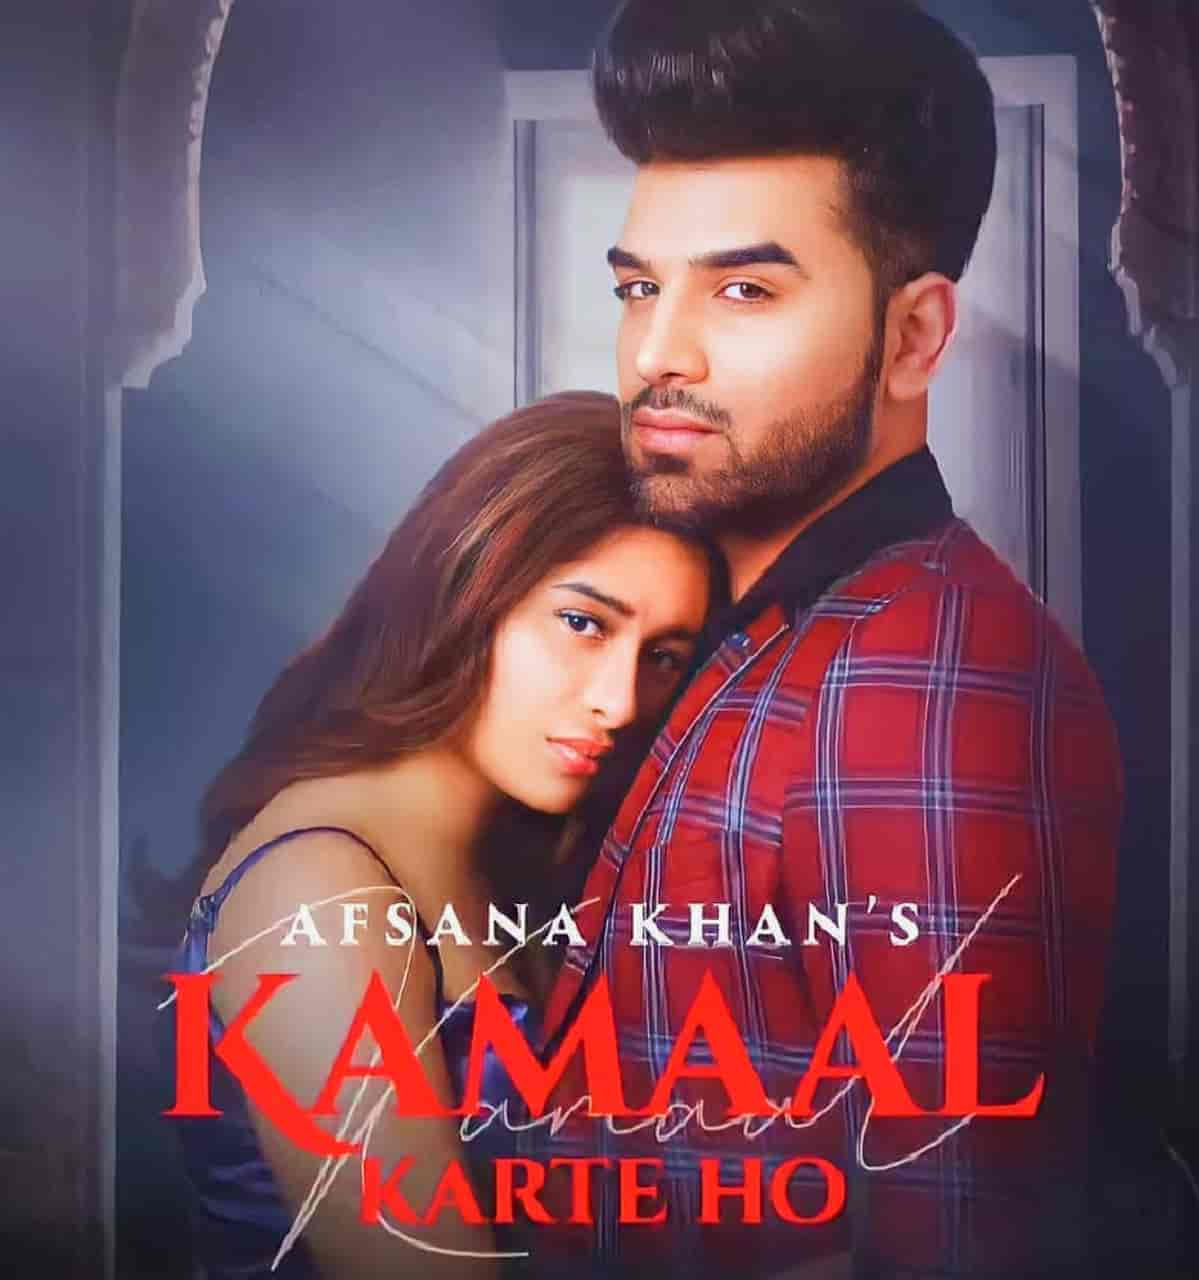 A very talented punjabi female artist Afsana Khan come back again with new sad hindi song which is titled Kamaal Karte Ho sung by her.